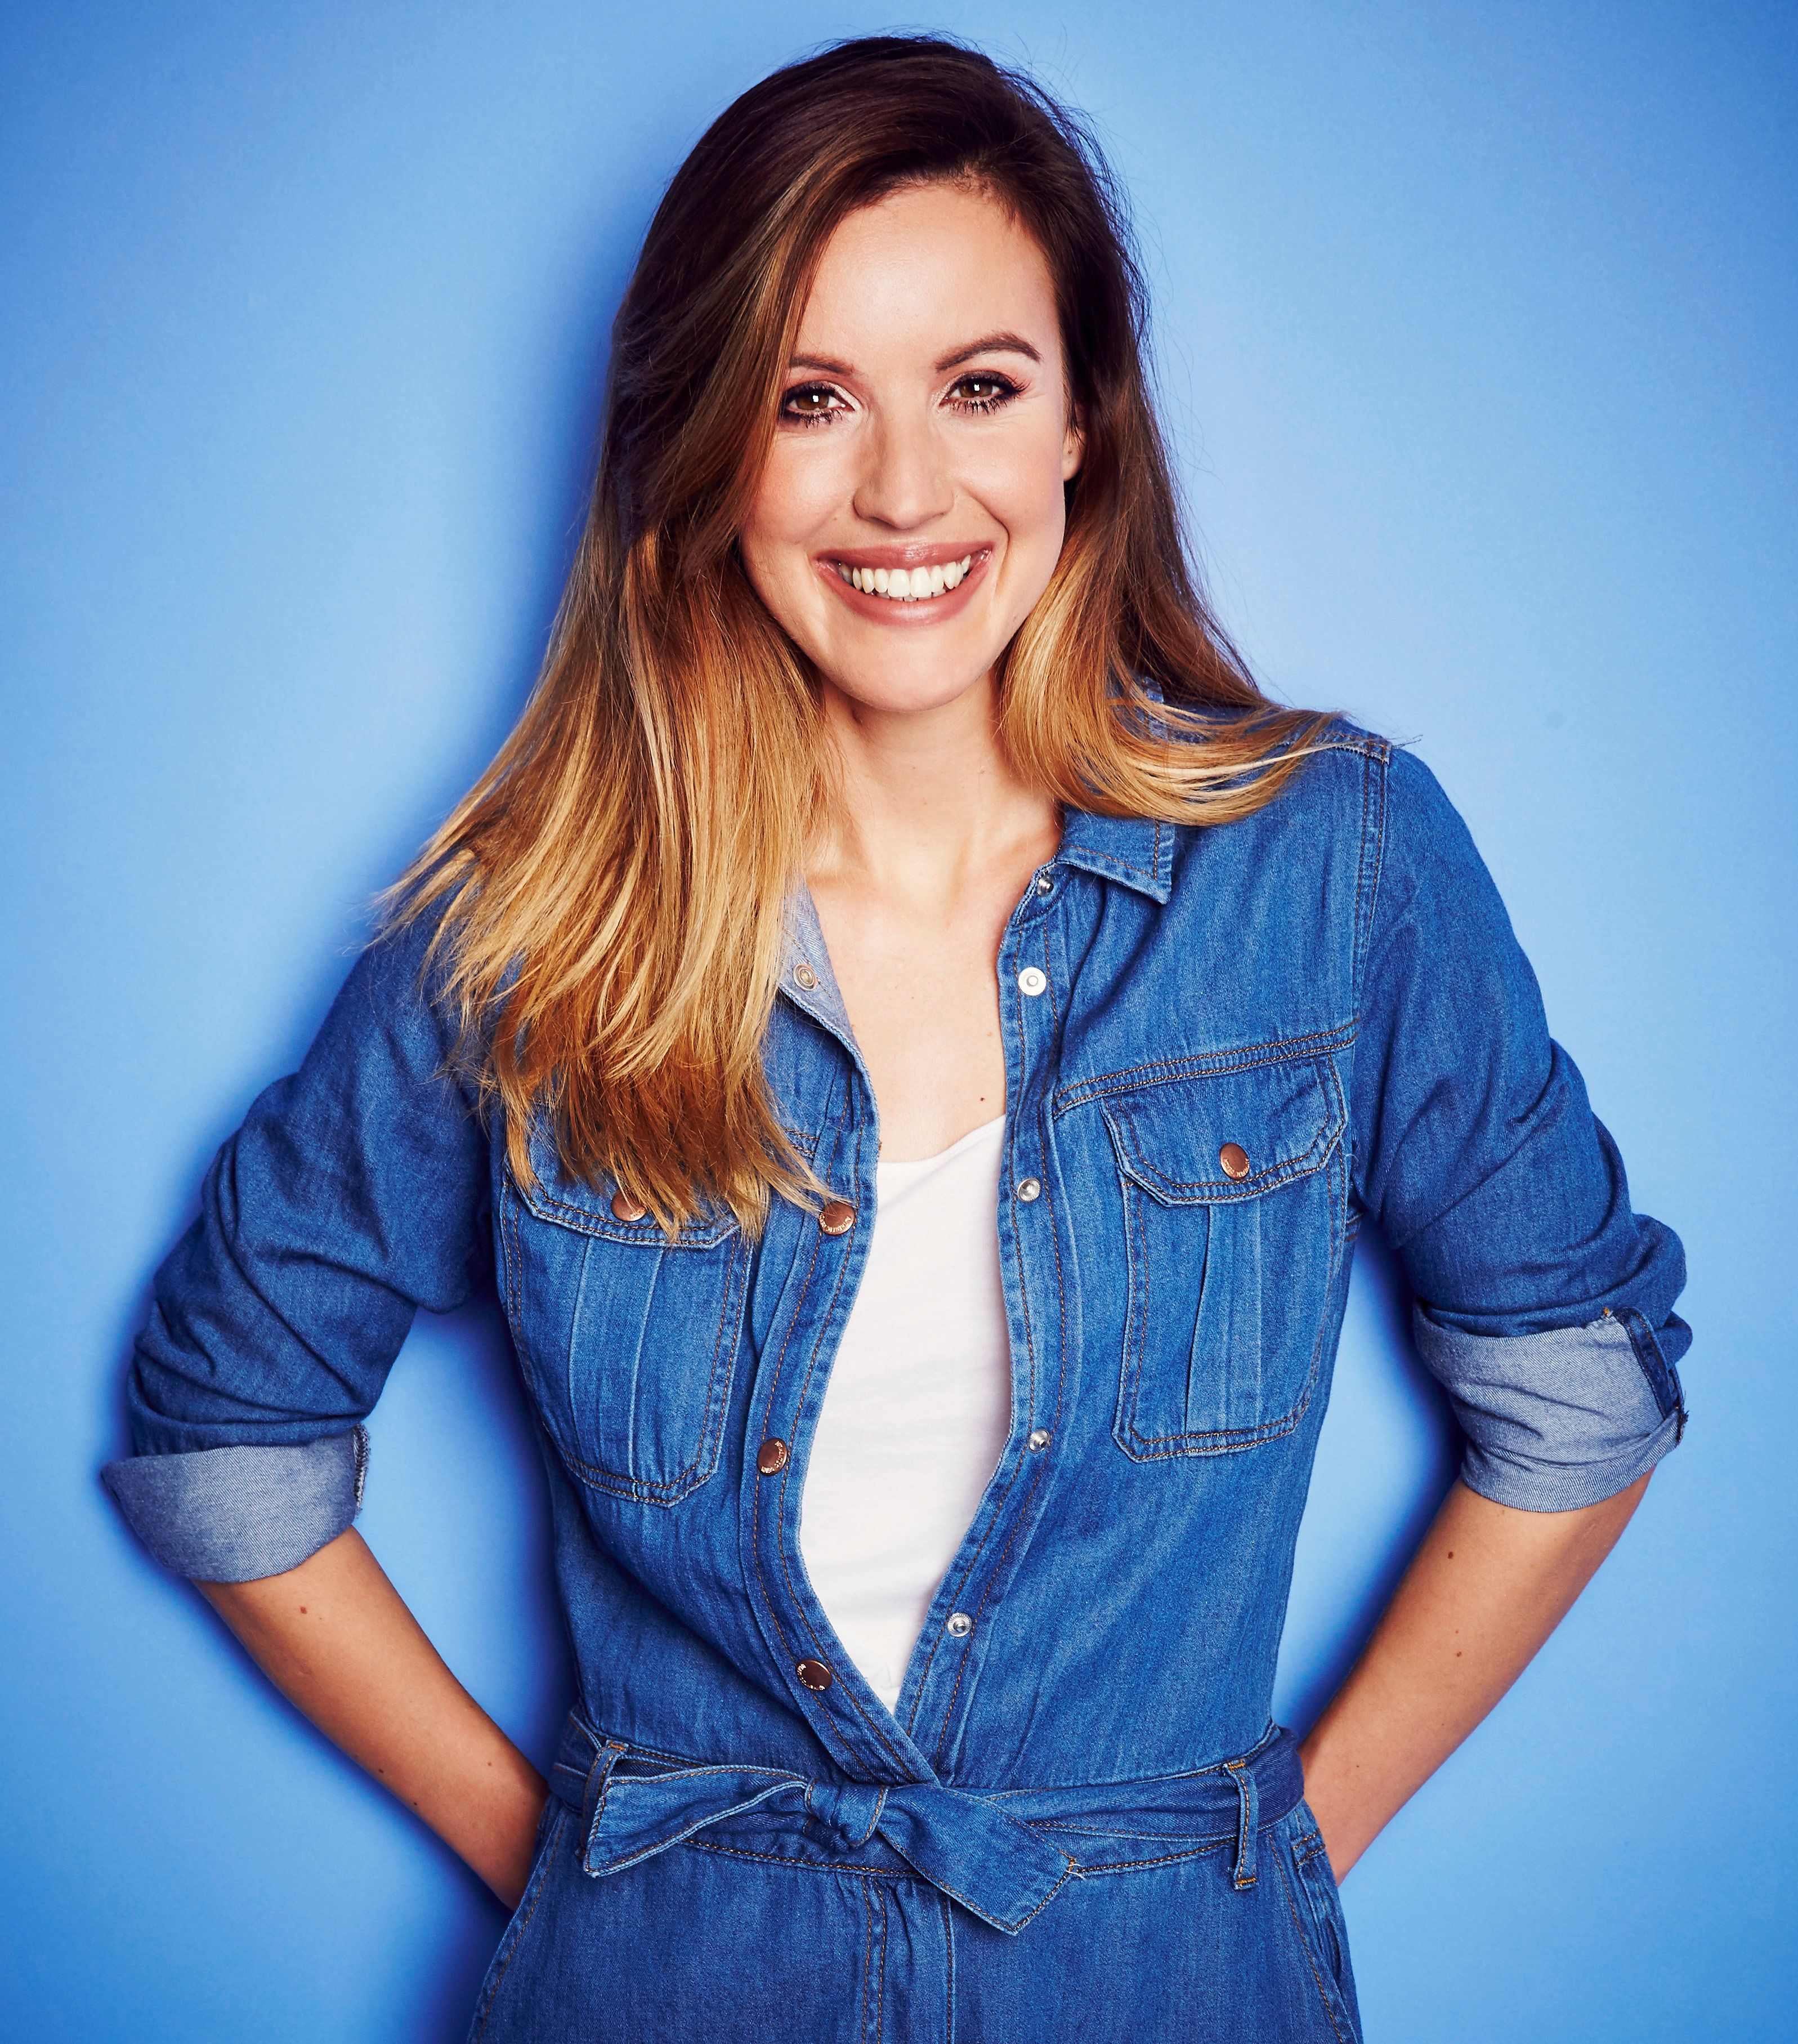 Ex-Sky Sports Host Charlie Webster On Coping With  Severe PTSD After Near-Death Malaria